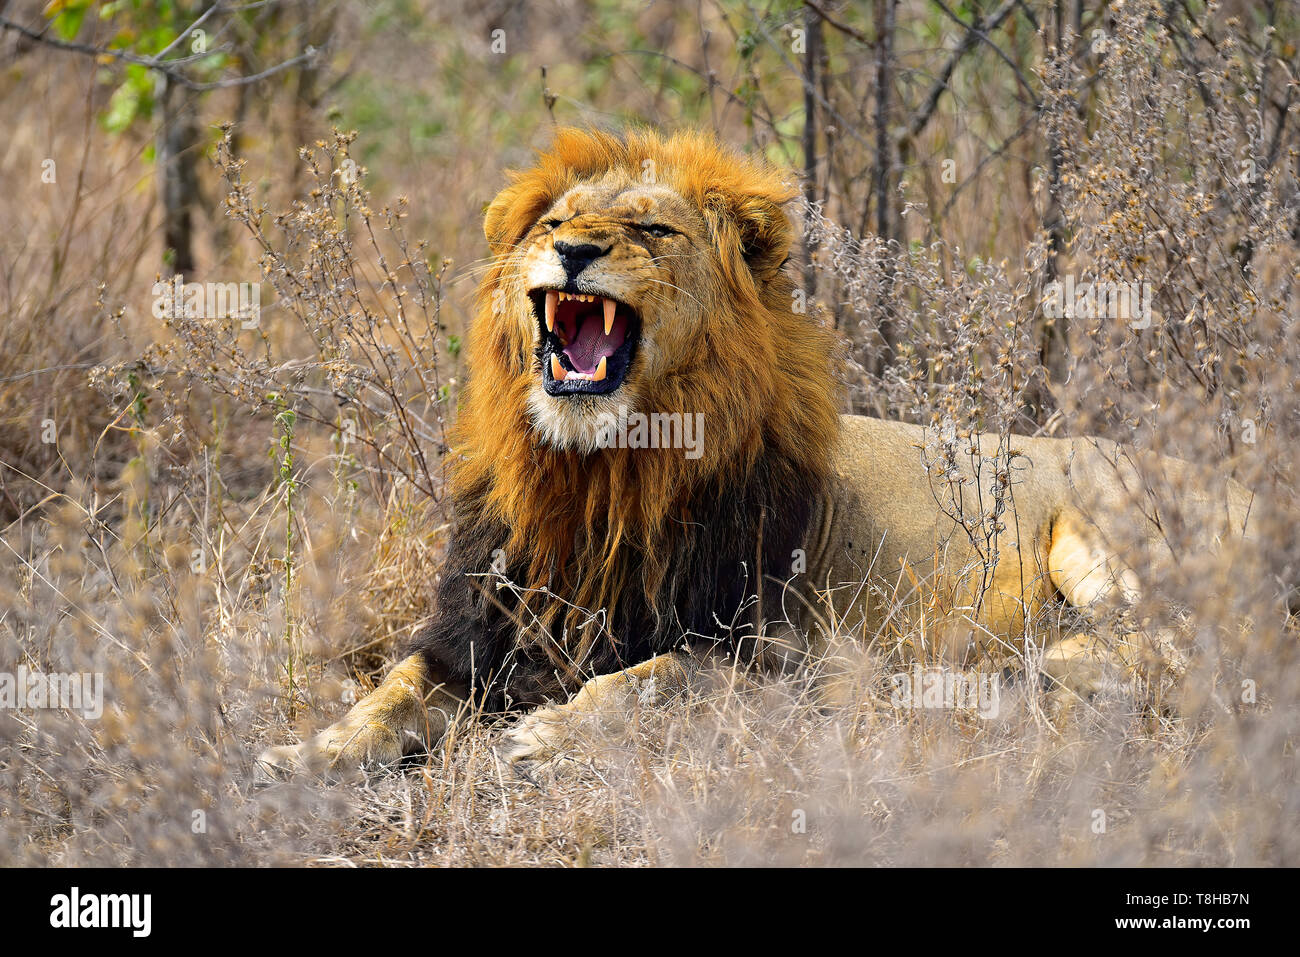 Lion Dark Maned Panthera Leo snarling in the Savanna Kruger National Park South Africa - Stock Image